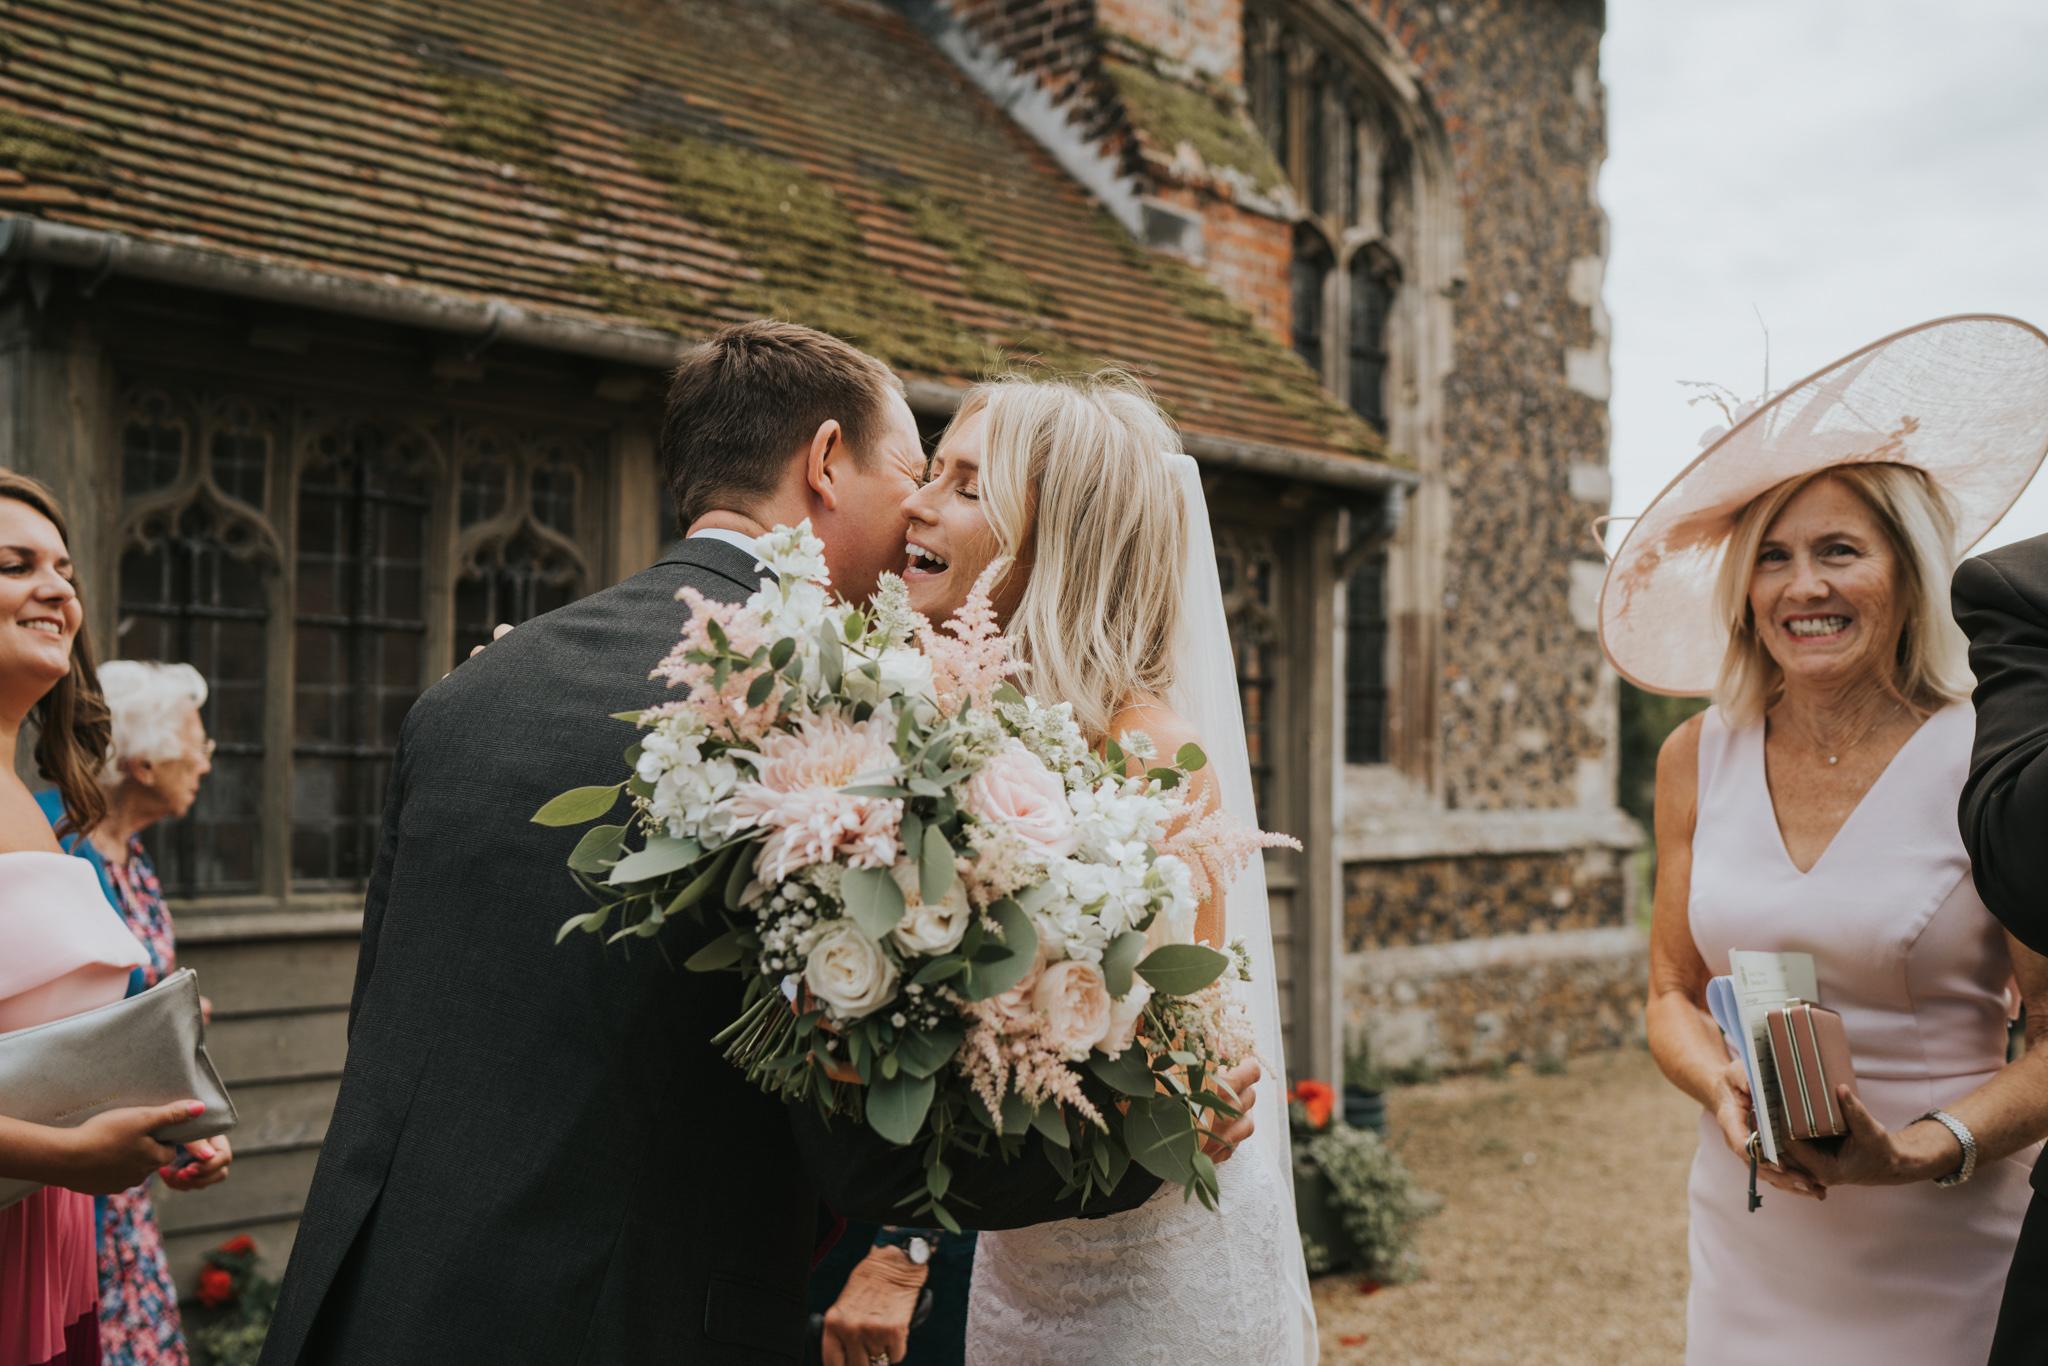 intimate-english-church-wedding-sarah-alex-colchester-essex-grace-elizabeth-colchester-essex-alternative-wedding-lifestyle-photographer-essex-suffolk-norfolk-devon (66 of 92).jpg